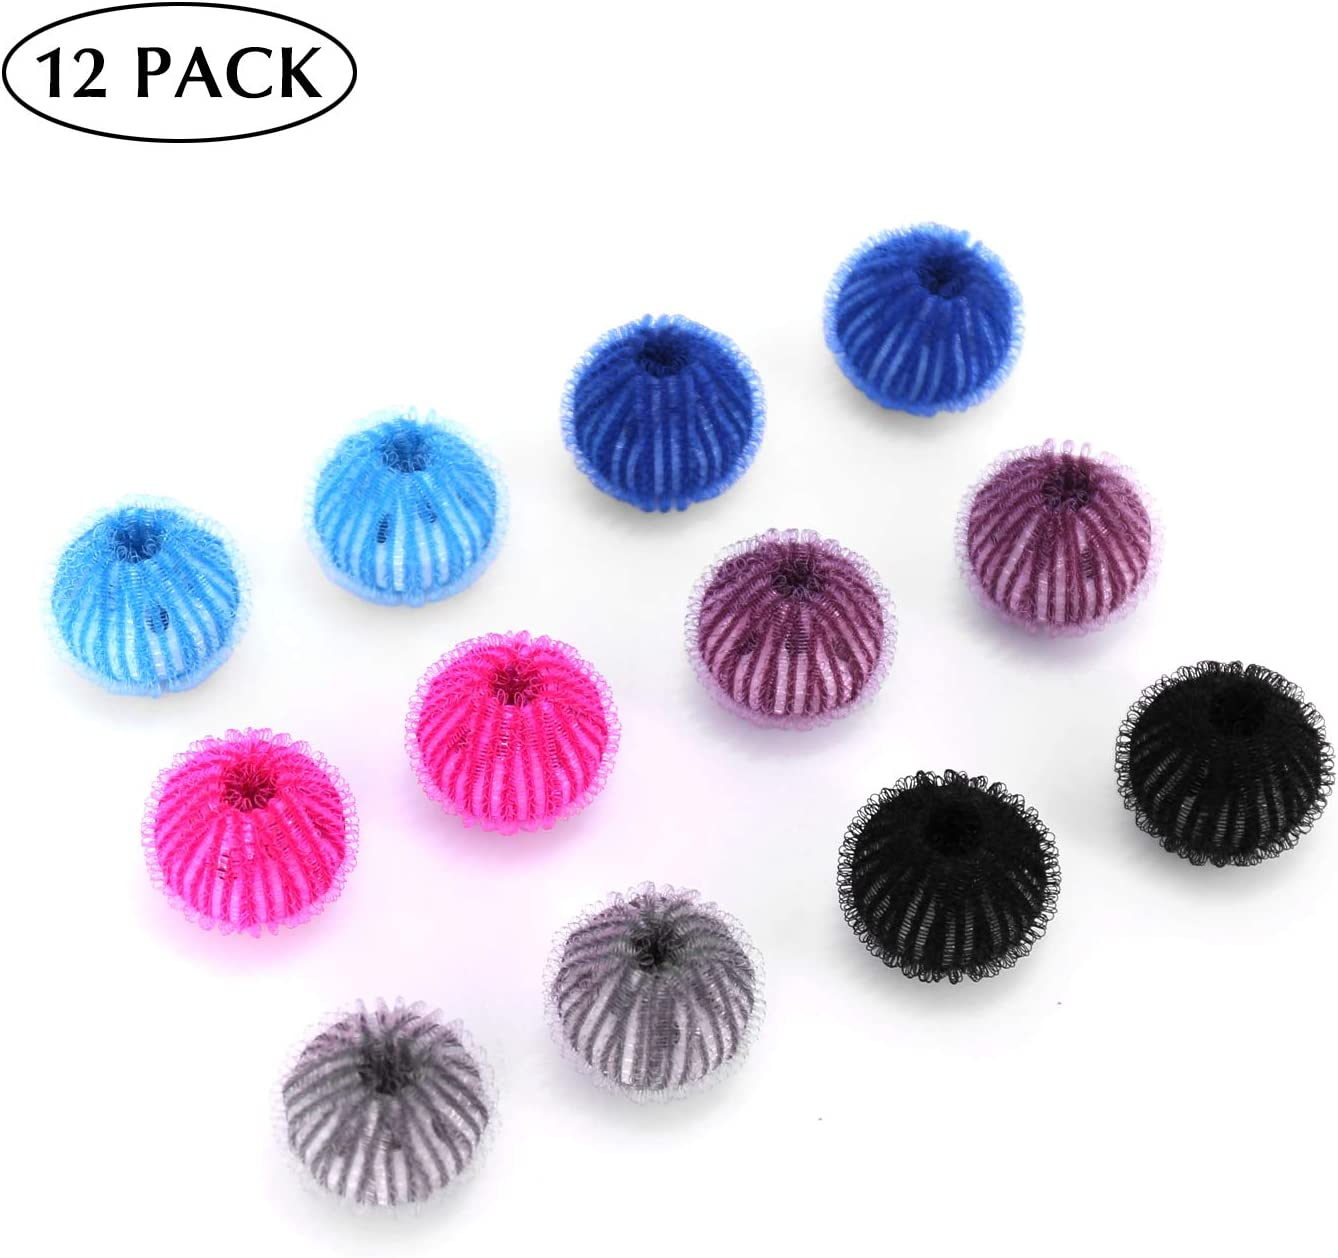 Upgraded Pet Hair Remover for Laundry-12 pack Lint Remover Washing Balls Reusable Dryer Balls Washer from Dogs and Cats